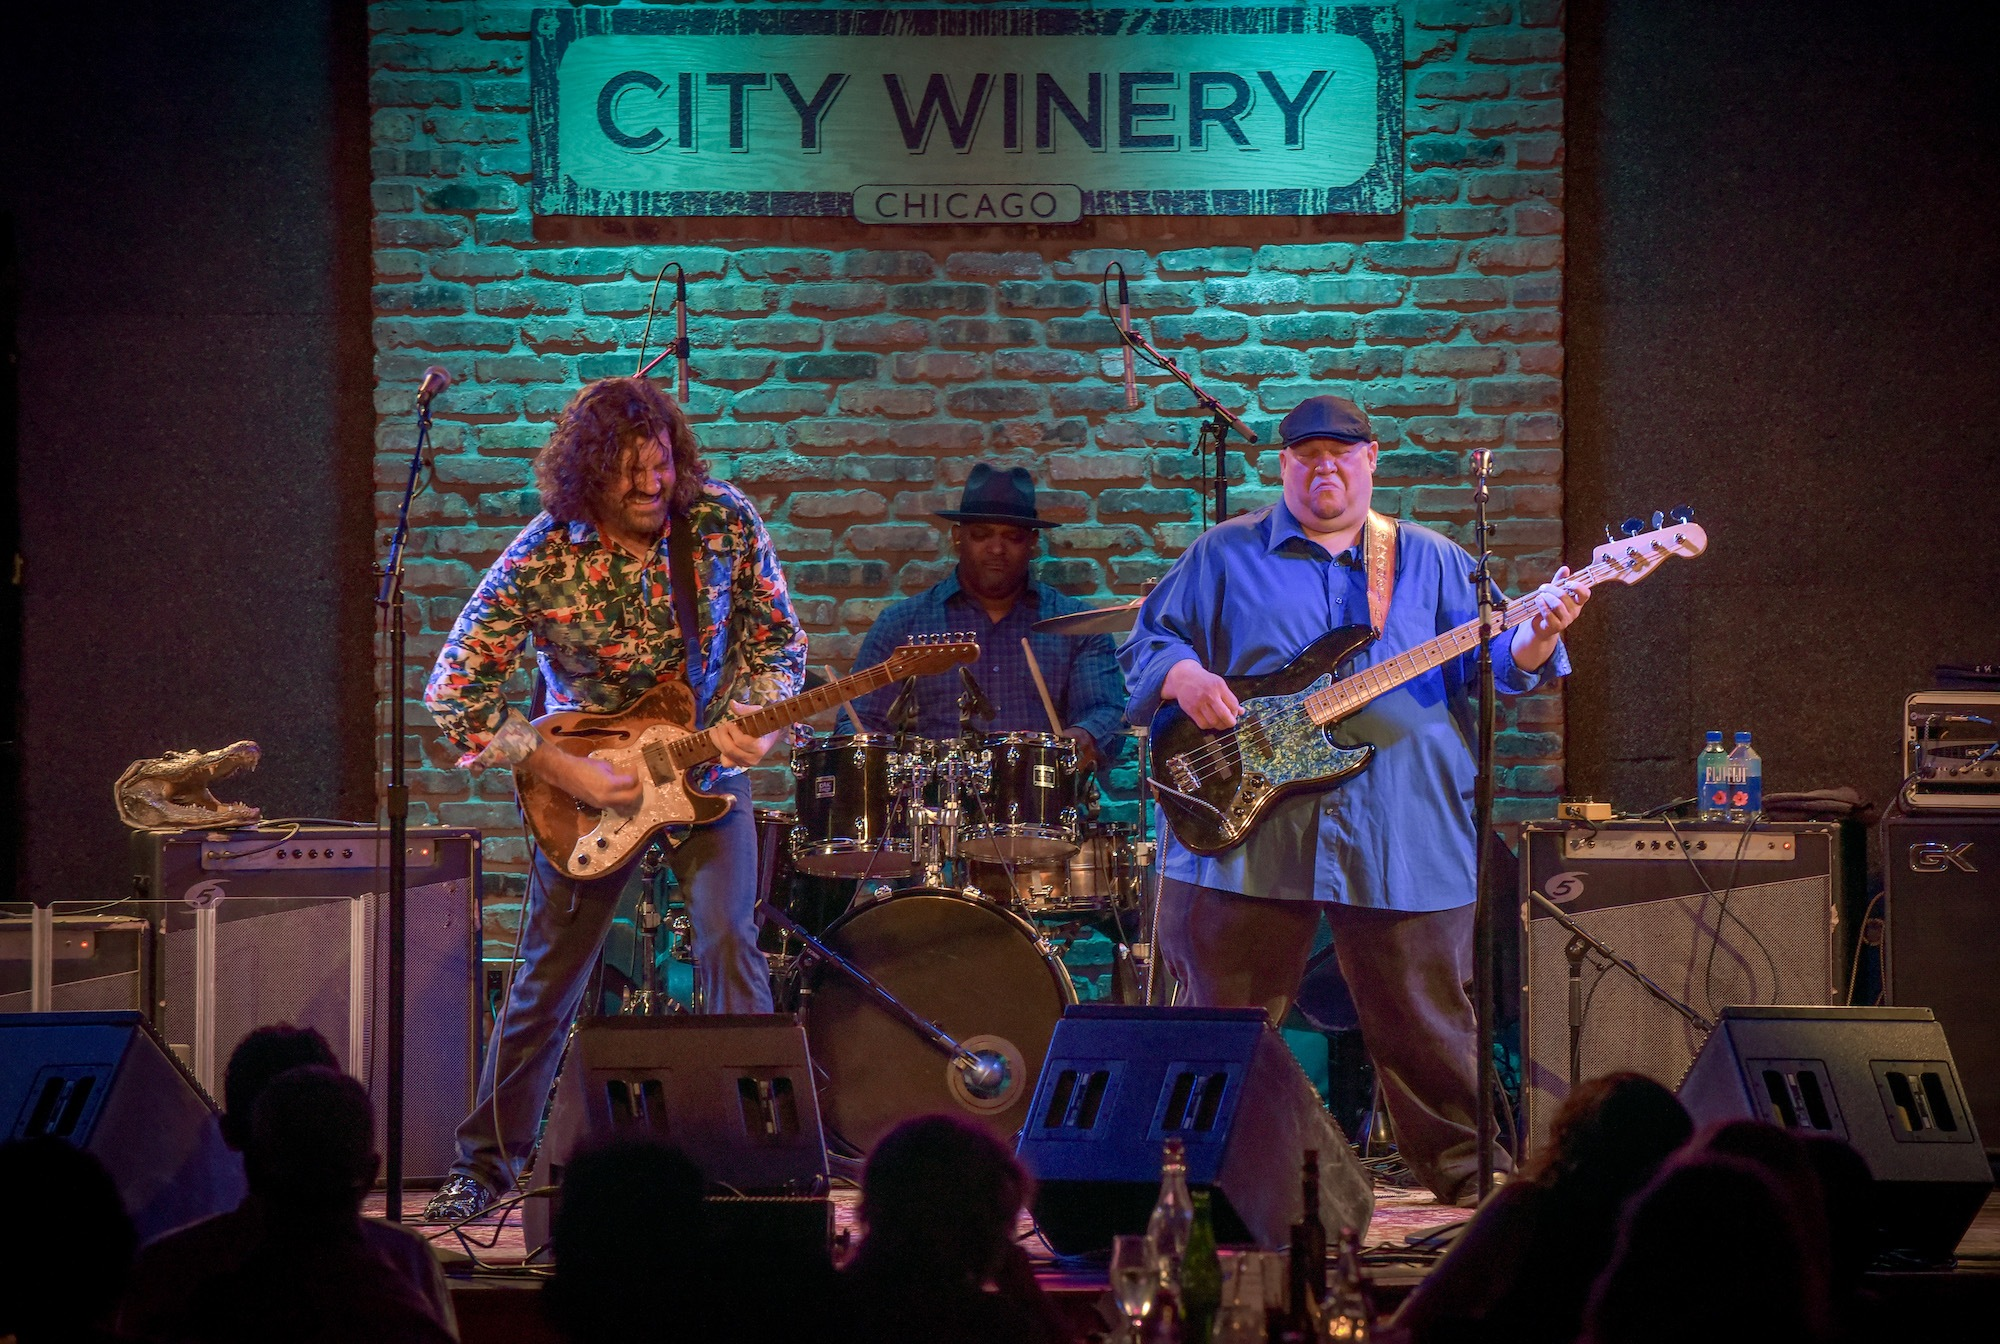 Tab Benoit With Special Guest Alastair Greene - City Winery - Chicago, IL - 06/4/2021 - Photo © 2021 by: Roman Sobus